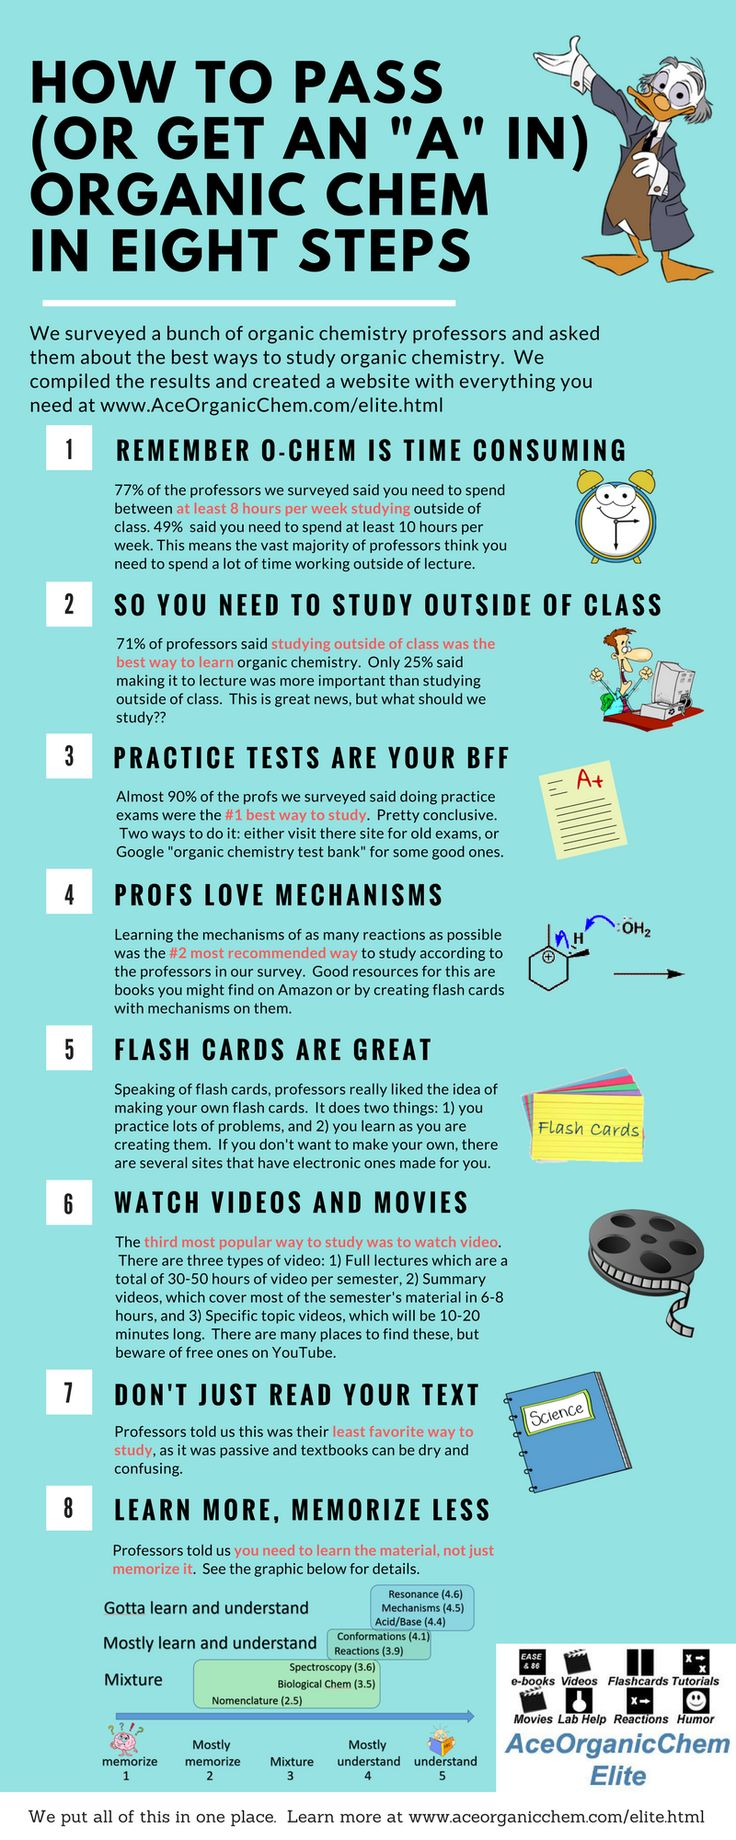 We surveyed a bunch of organic chem professors, and this is what they told us.  Go to www.aceorganicchem.com/organic-chemistry-elite-preview.html to see the site we created to help students with all of this in mind.